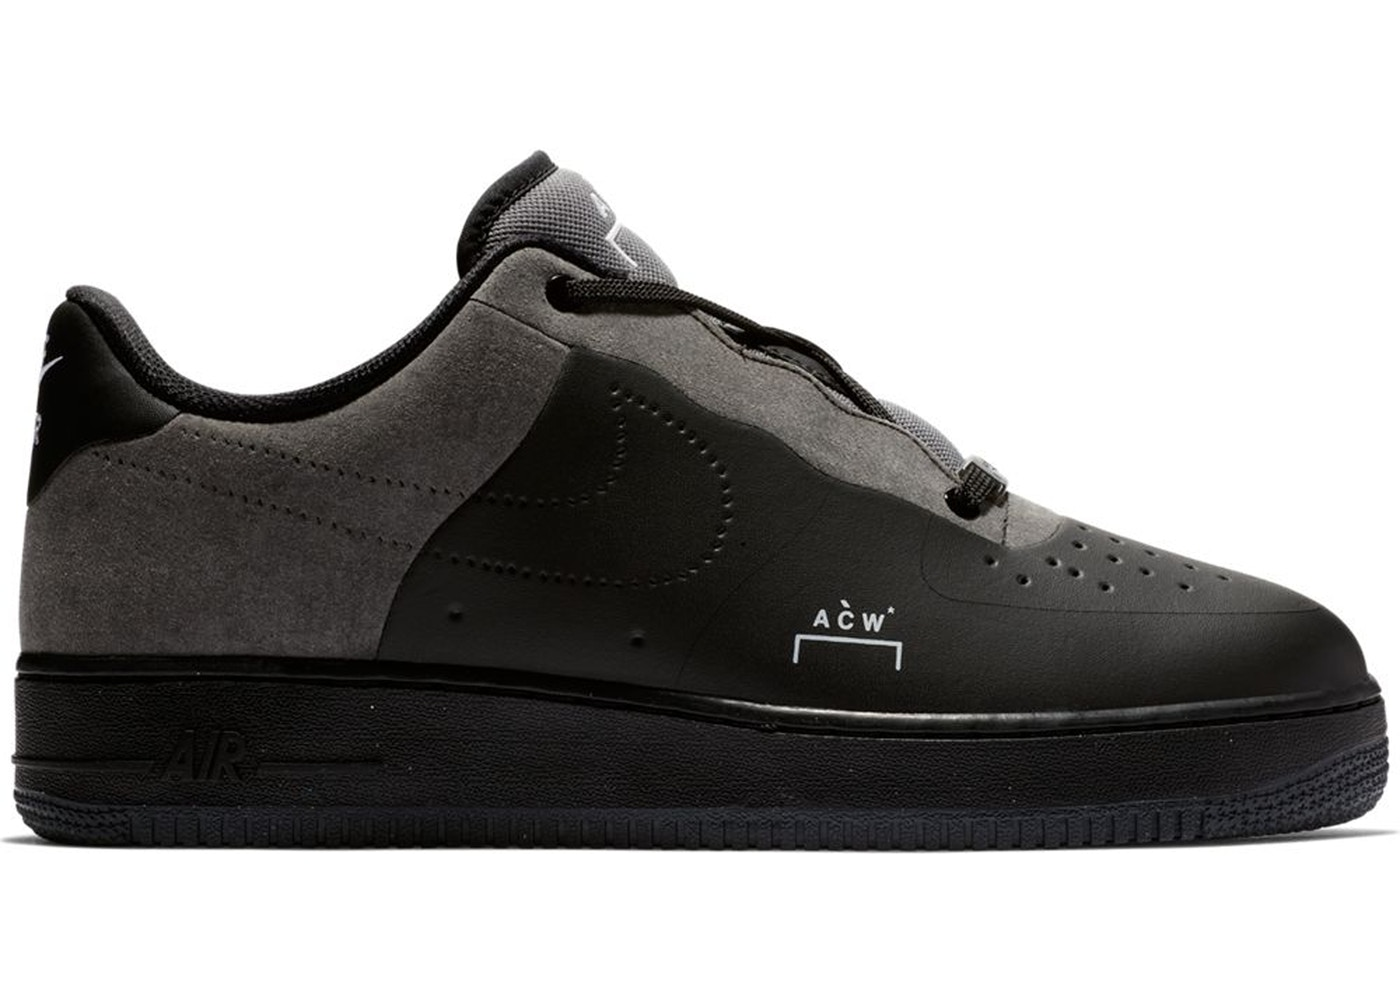 super popular ae7fd 5e191 Air Force 1 Low A Cold Wall Black - BQ6924-001